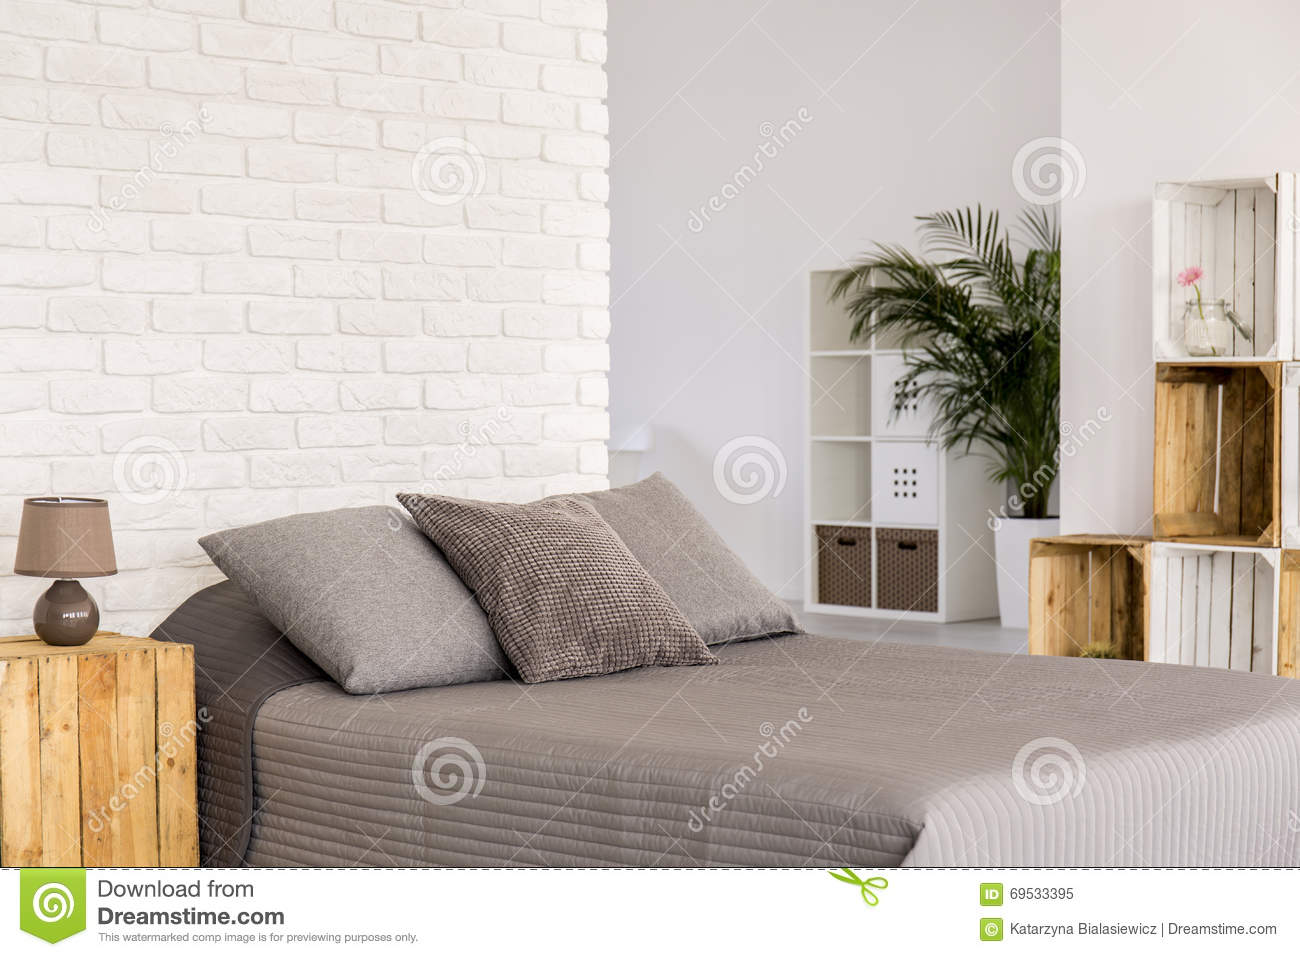 brick bedroom furniture. Modern Bedroom In Eco Style Stock Image - Of Interior, Modern: 69533395 Brick Furniture E